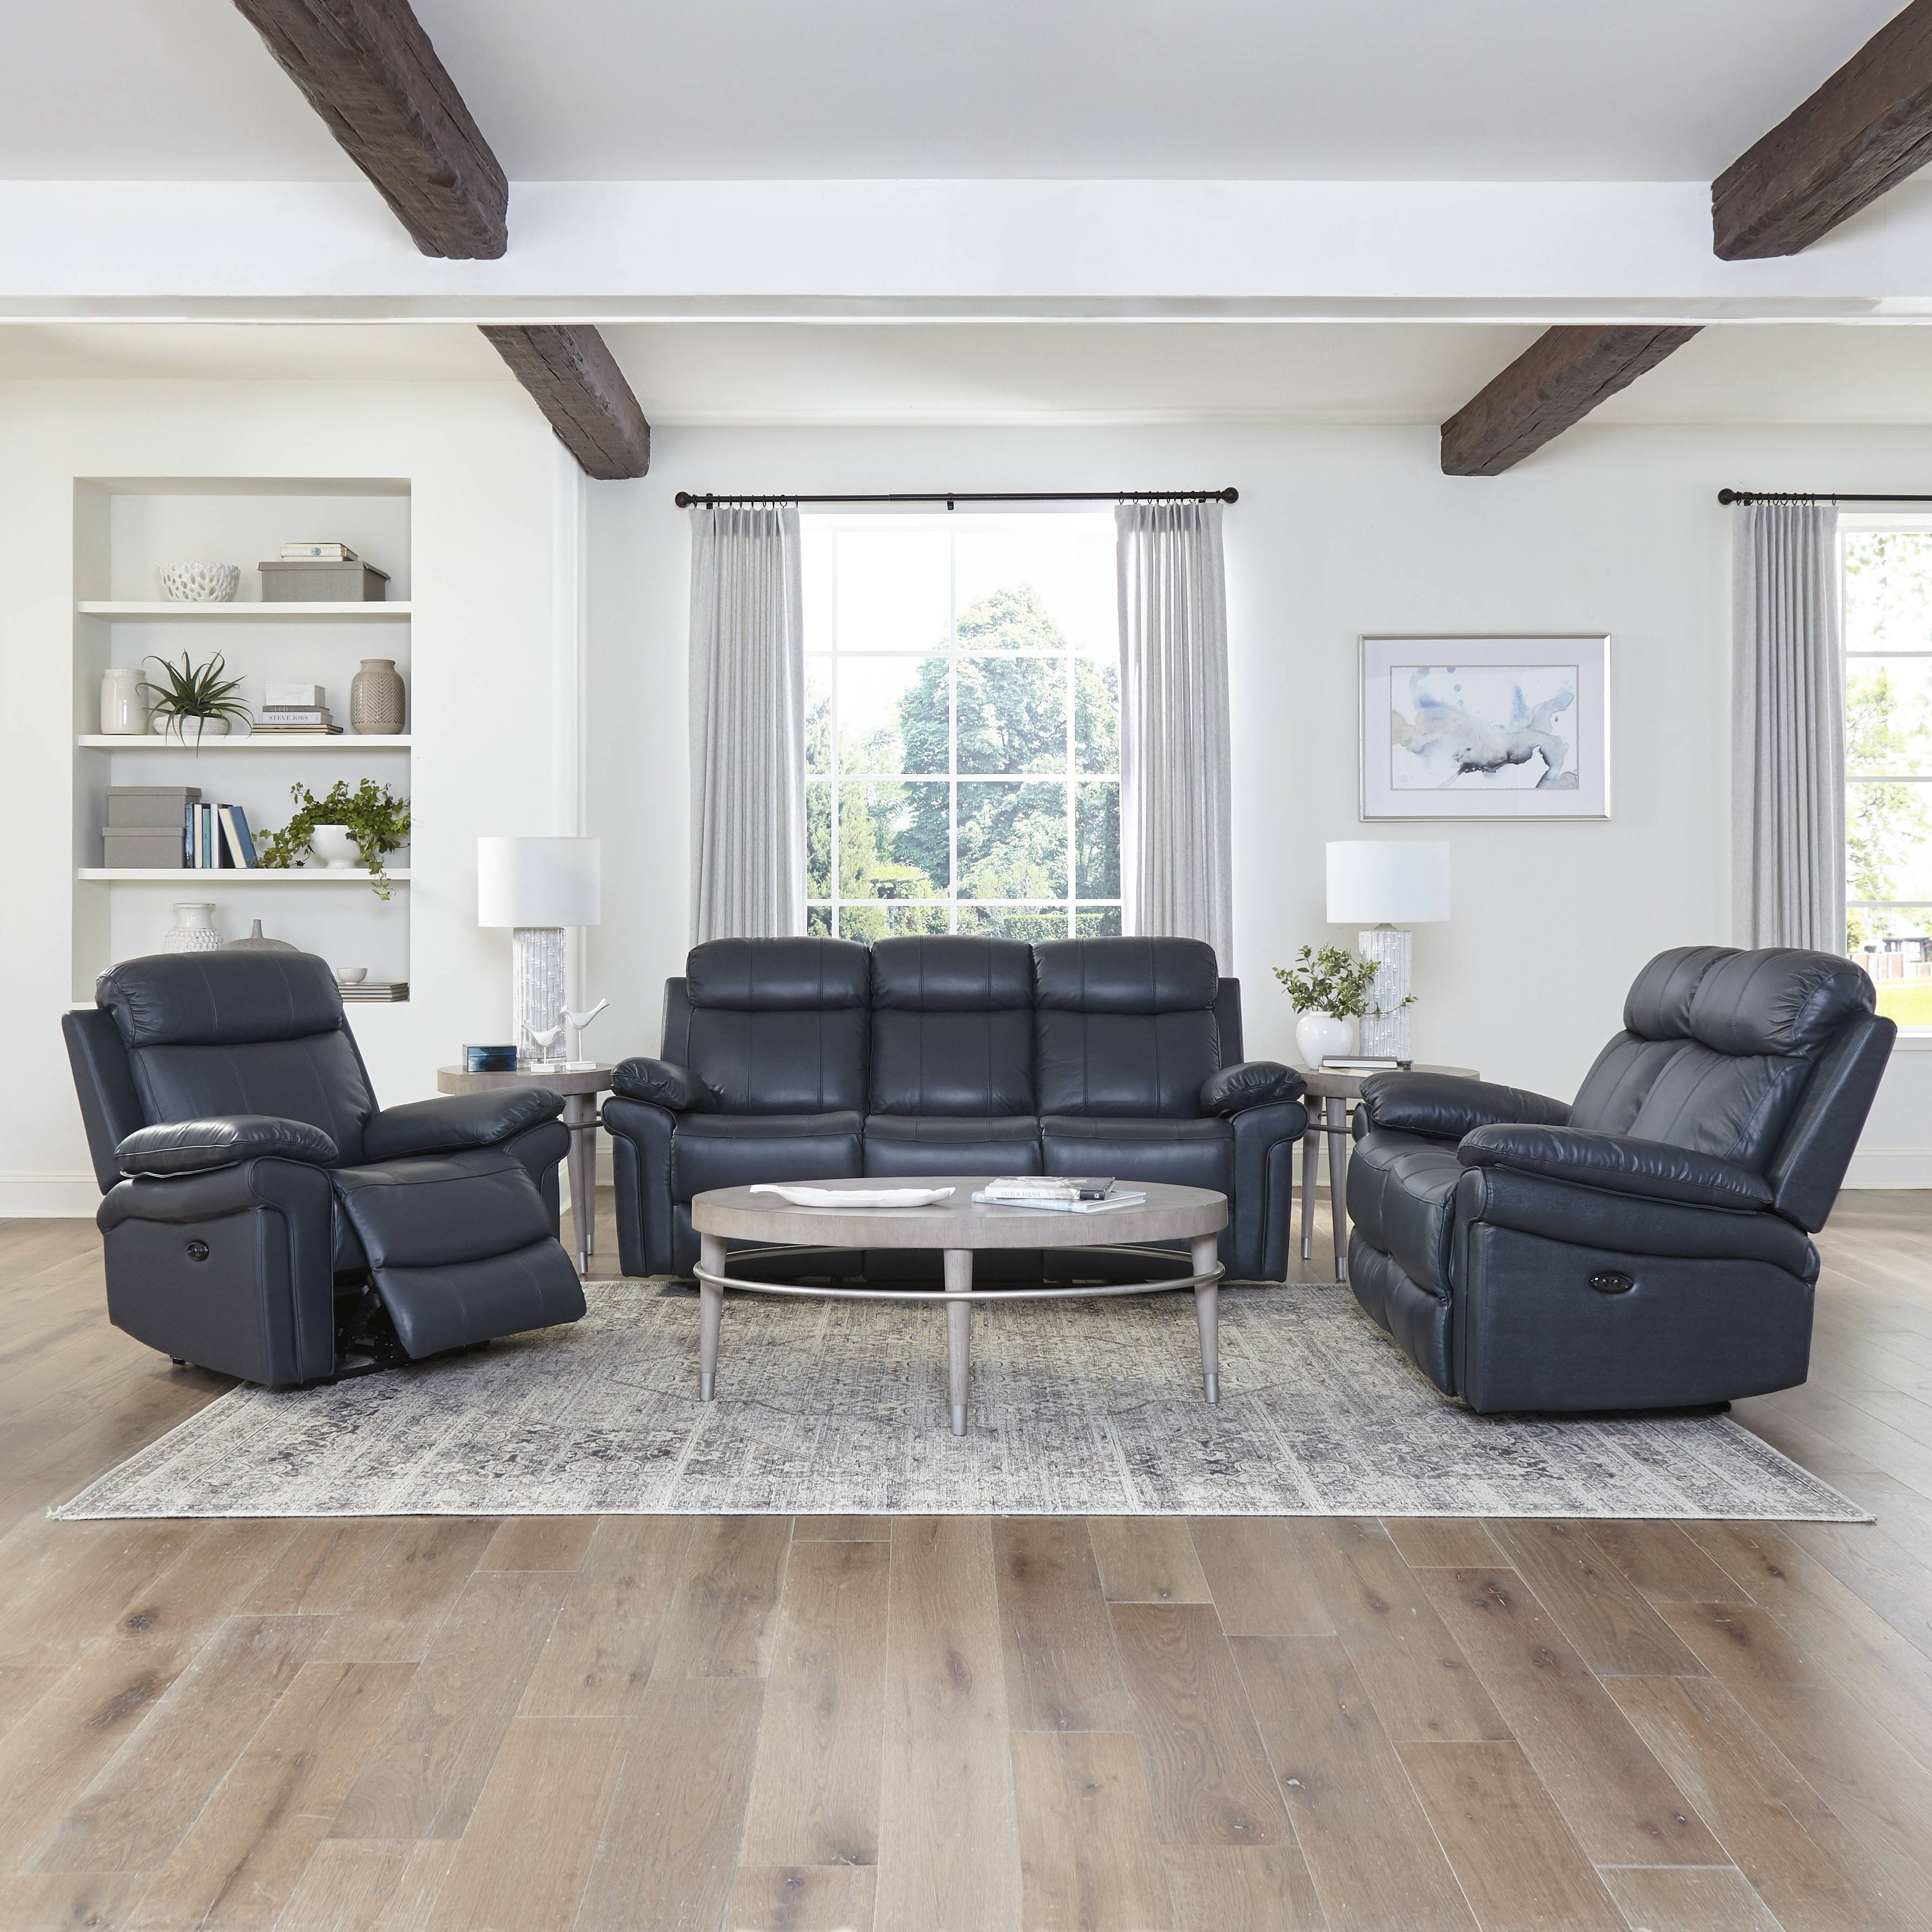 Image of: Shop Black Friday Deals On Hudson Top Grain Leather Power Reclining Living Room Set Brown Blue Overstock 23621868